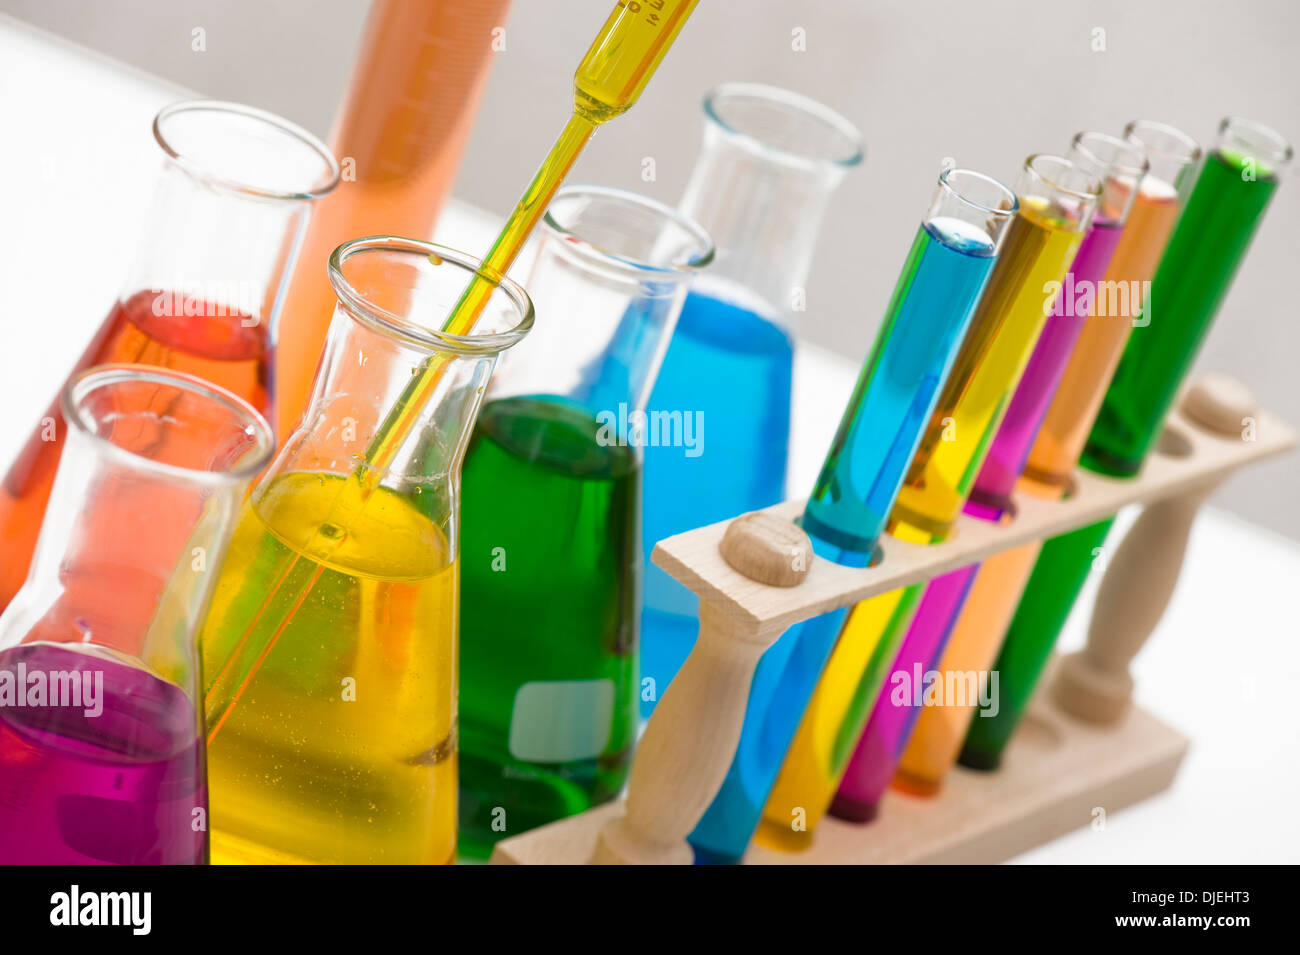 Chemical Science Laboratory Test Tube Laboratory